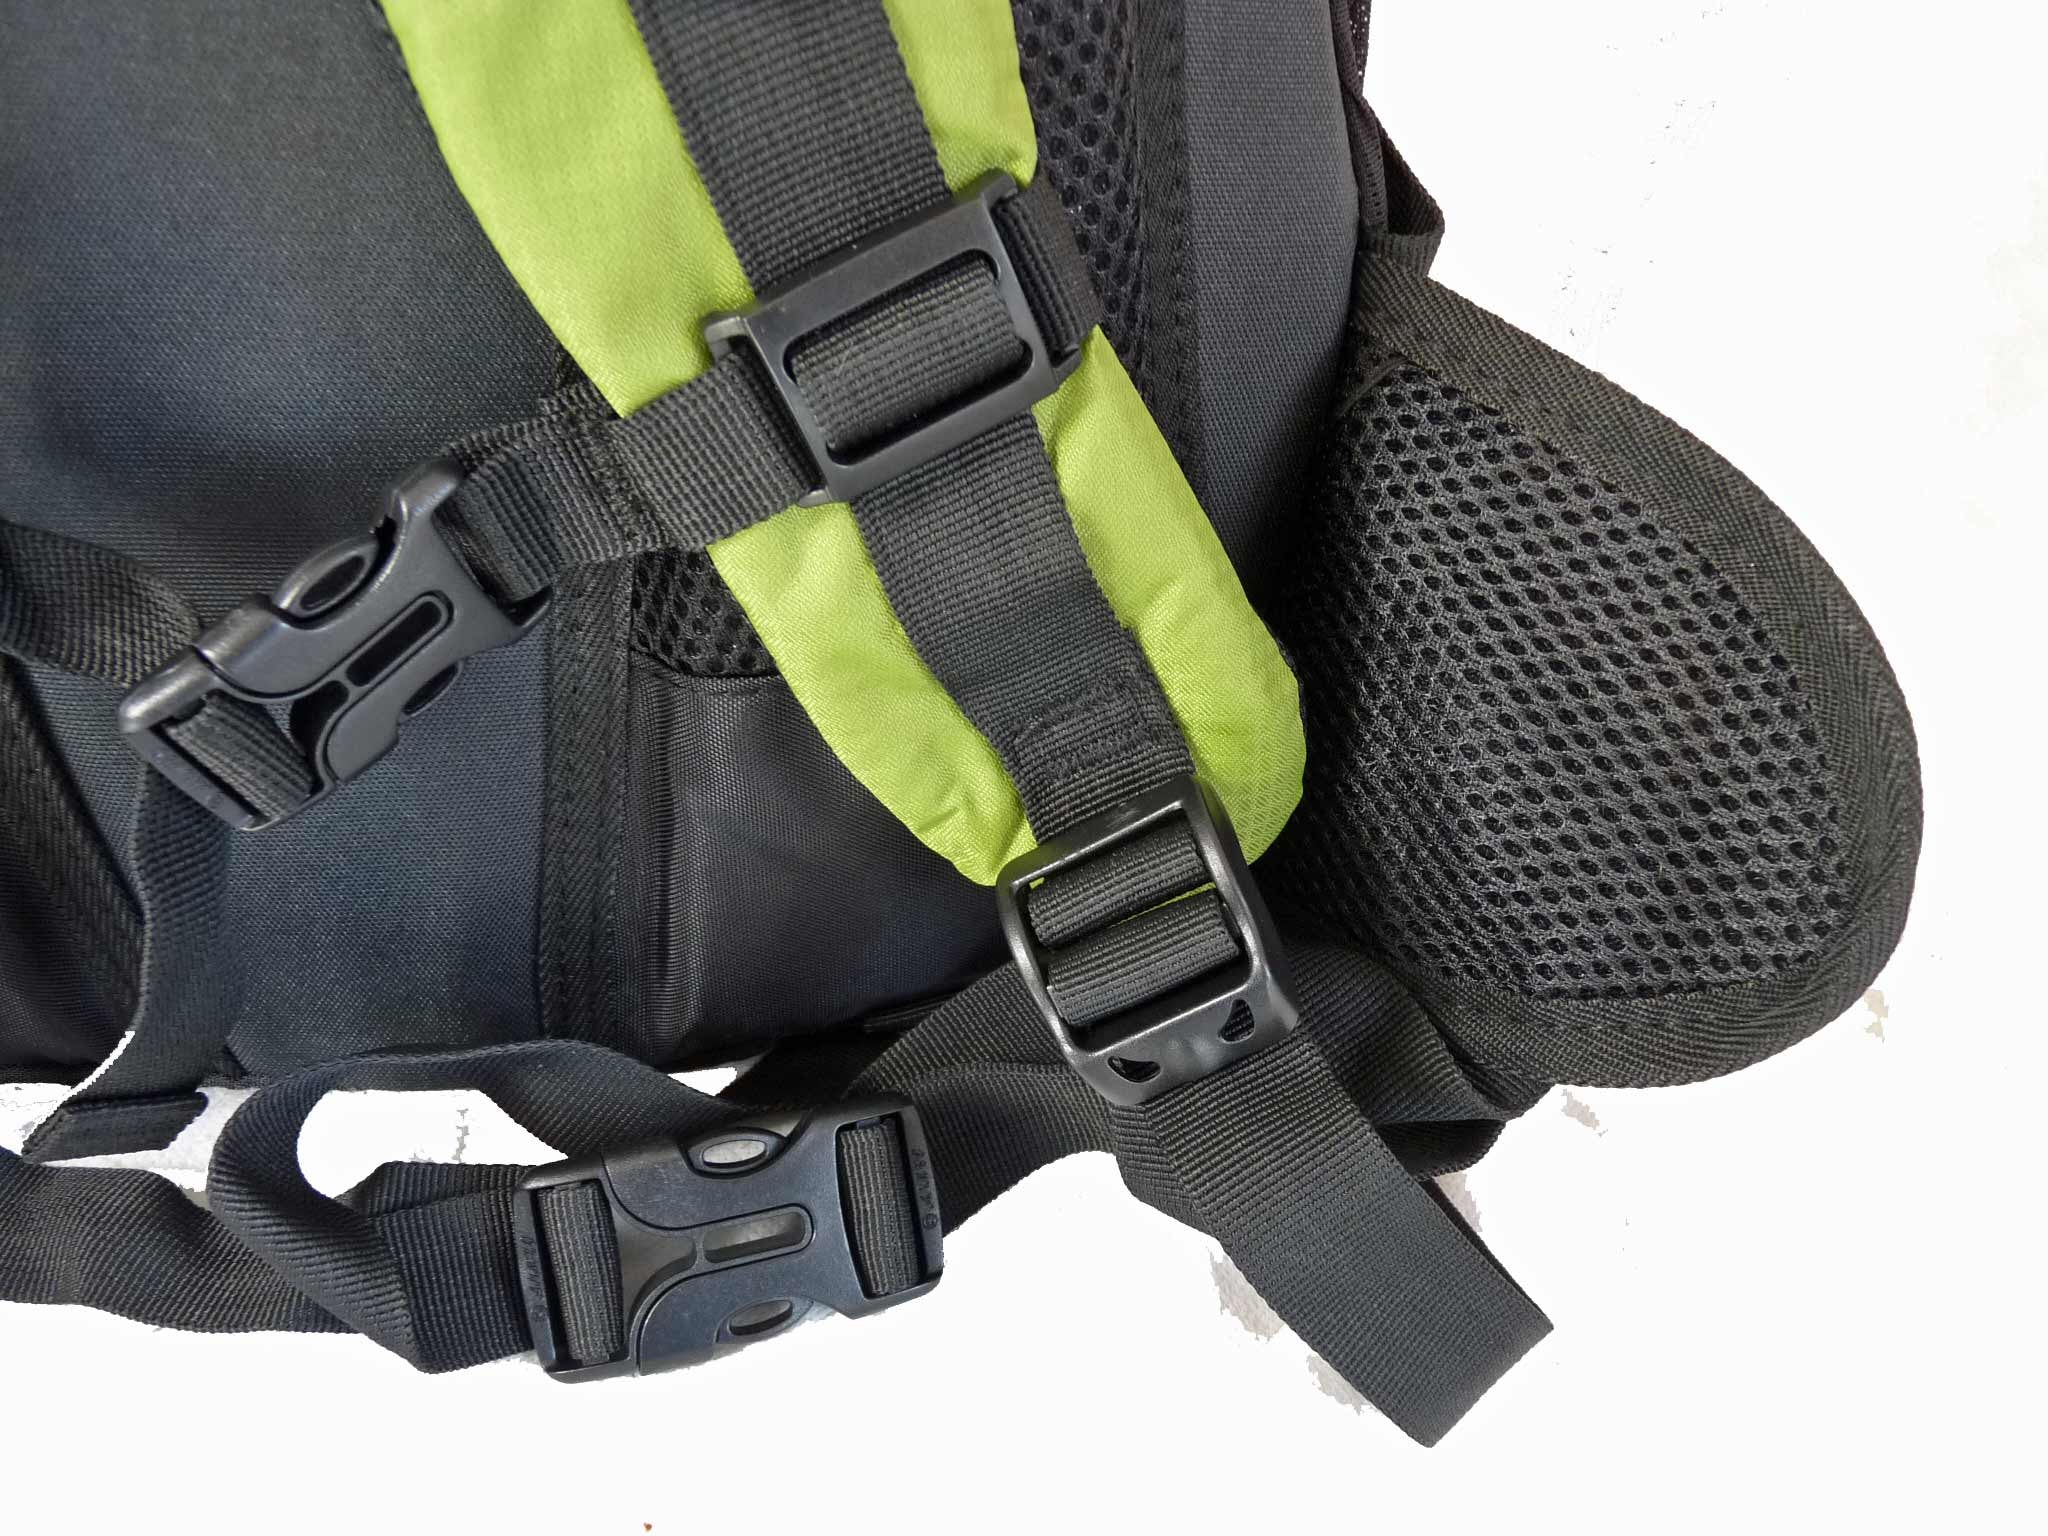 MacBook Air Backpack Rucksack Bag RL23G STRAP VIEW